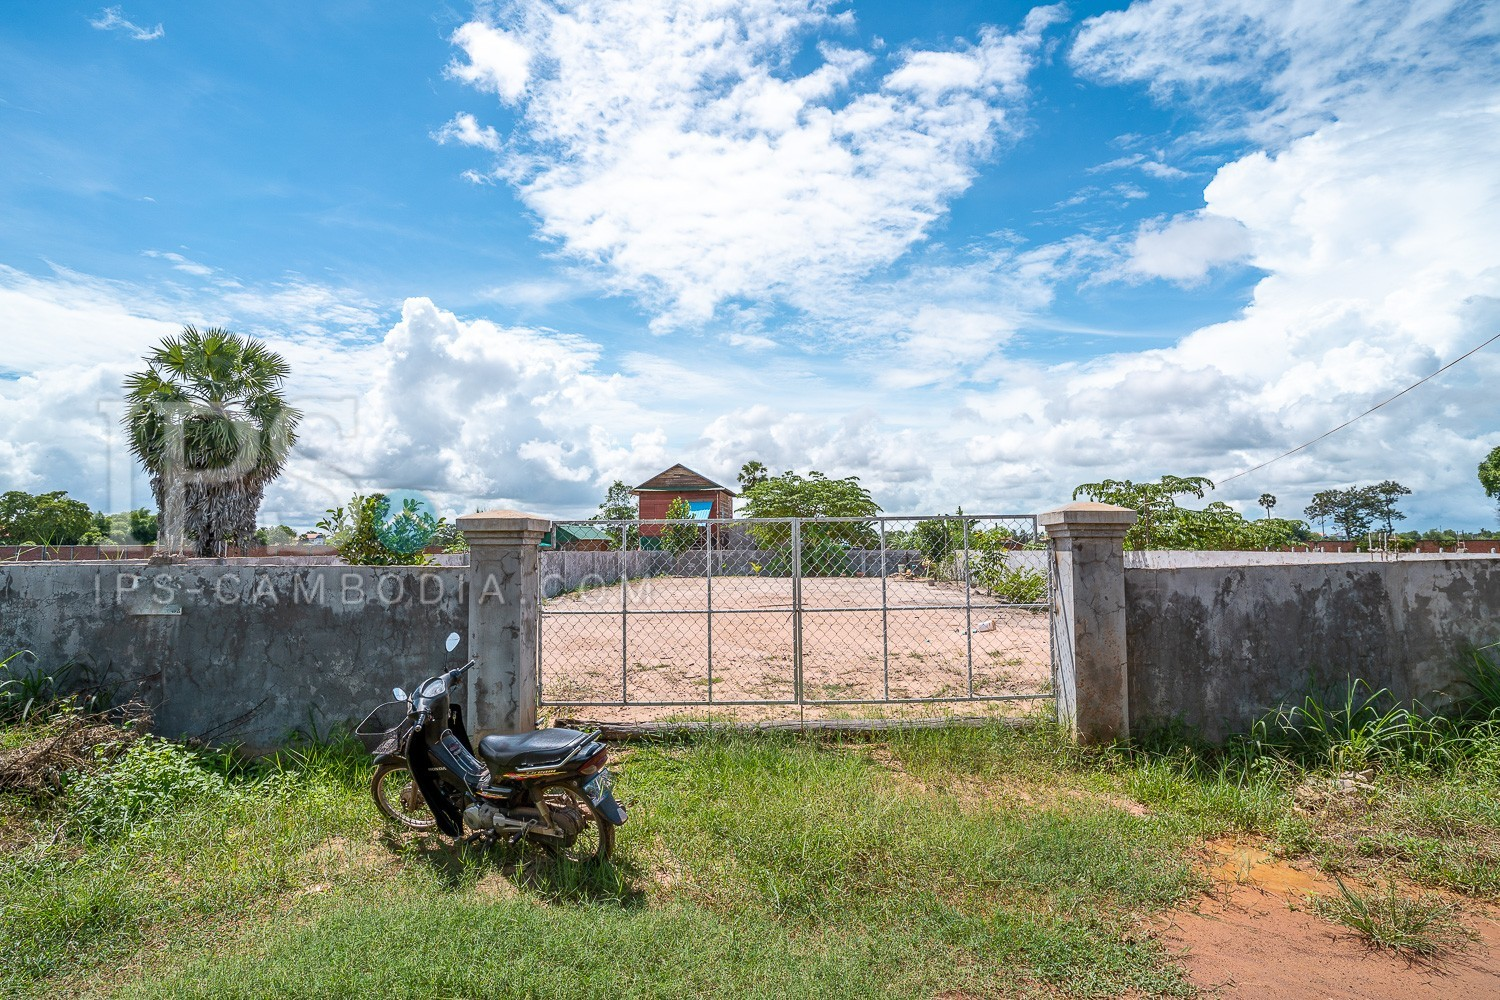 510 Sqm Land For Sale - Svay Thom, Siem Reap